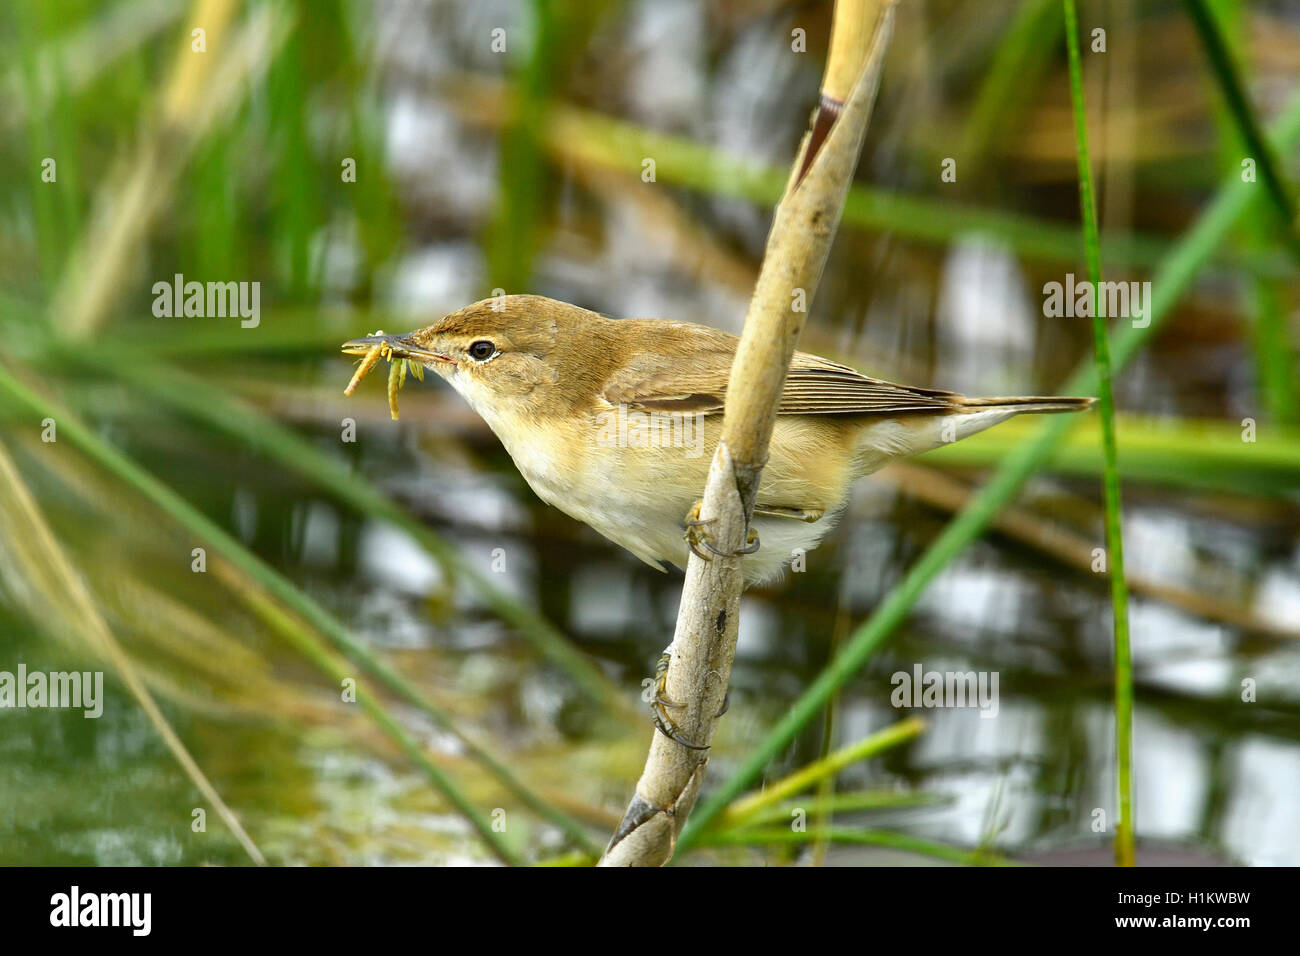 Eurasian reed warbler (Acrocephalus scirpaceus) with food, insect in its beak, on a reed, Canton of Neuchâtel, - Stock Image